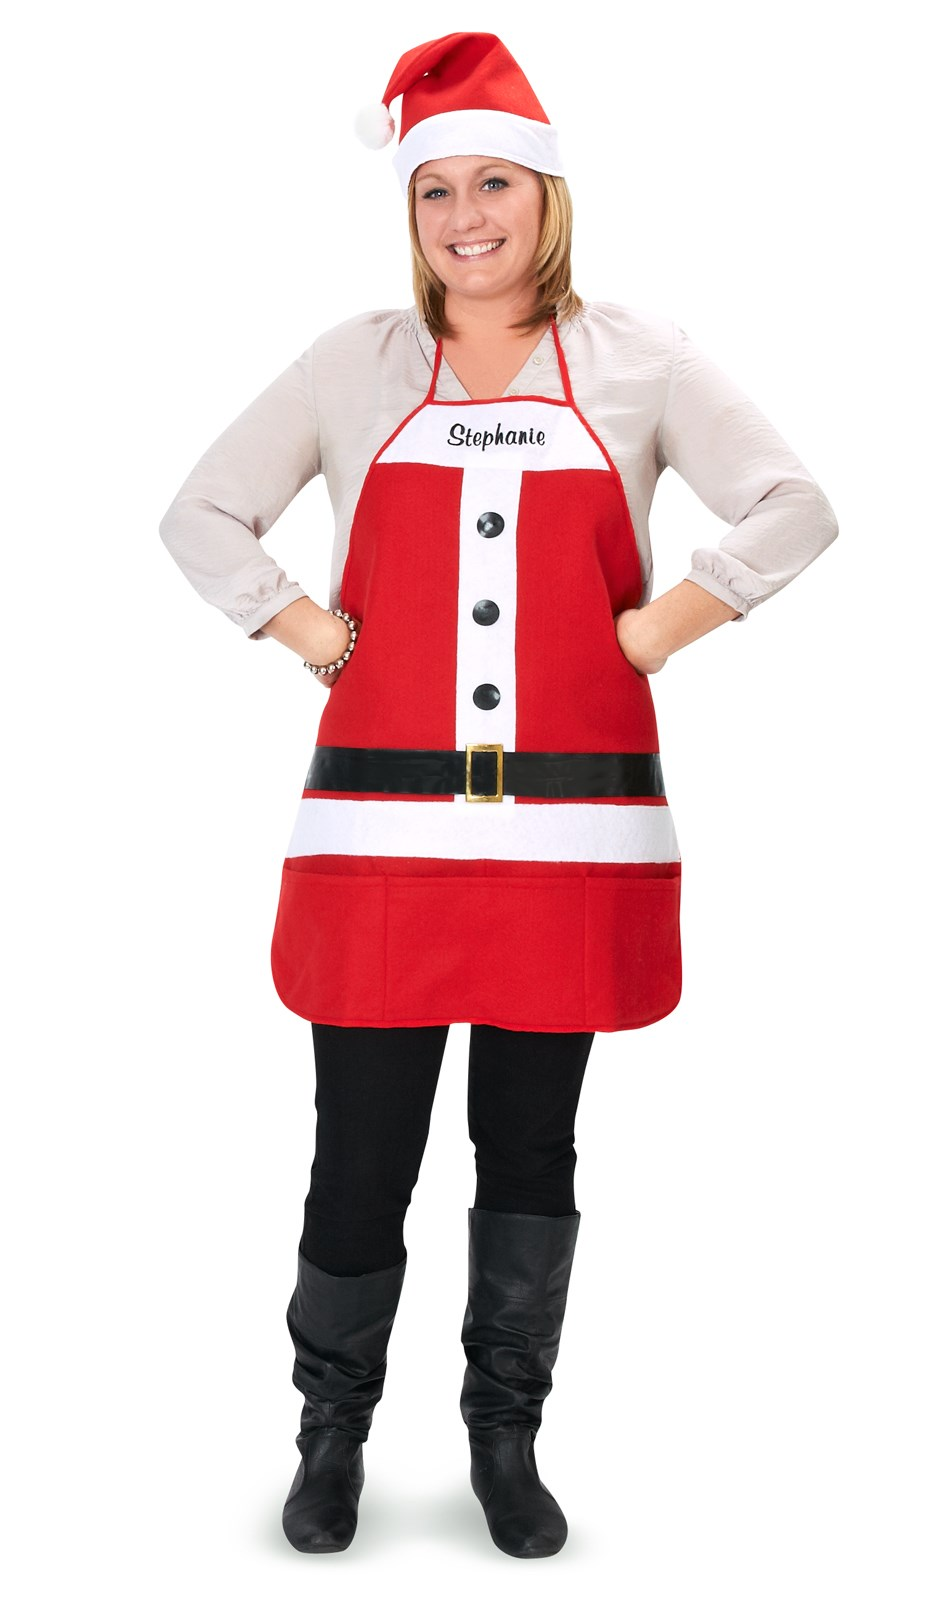 Holiday Embroidered Apron Hat Set Costume